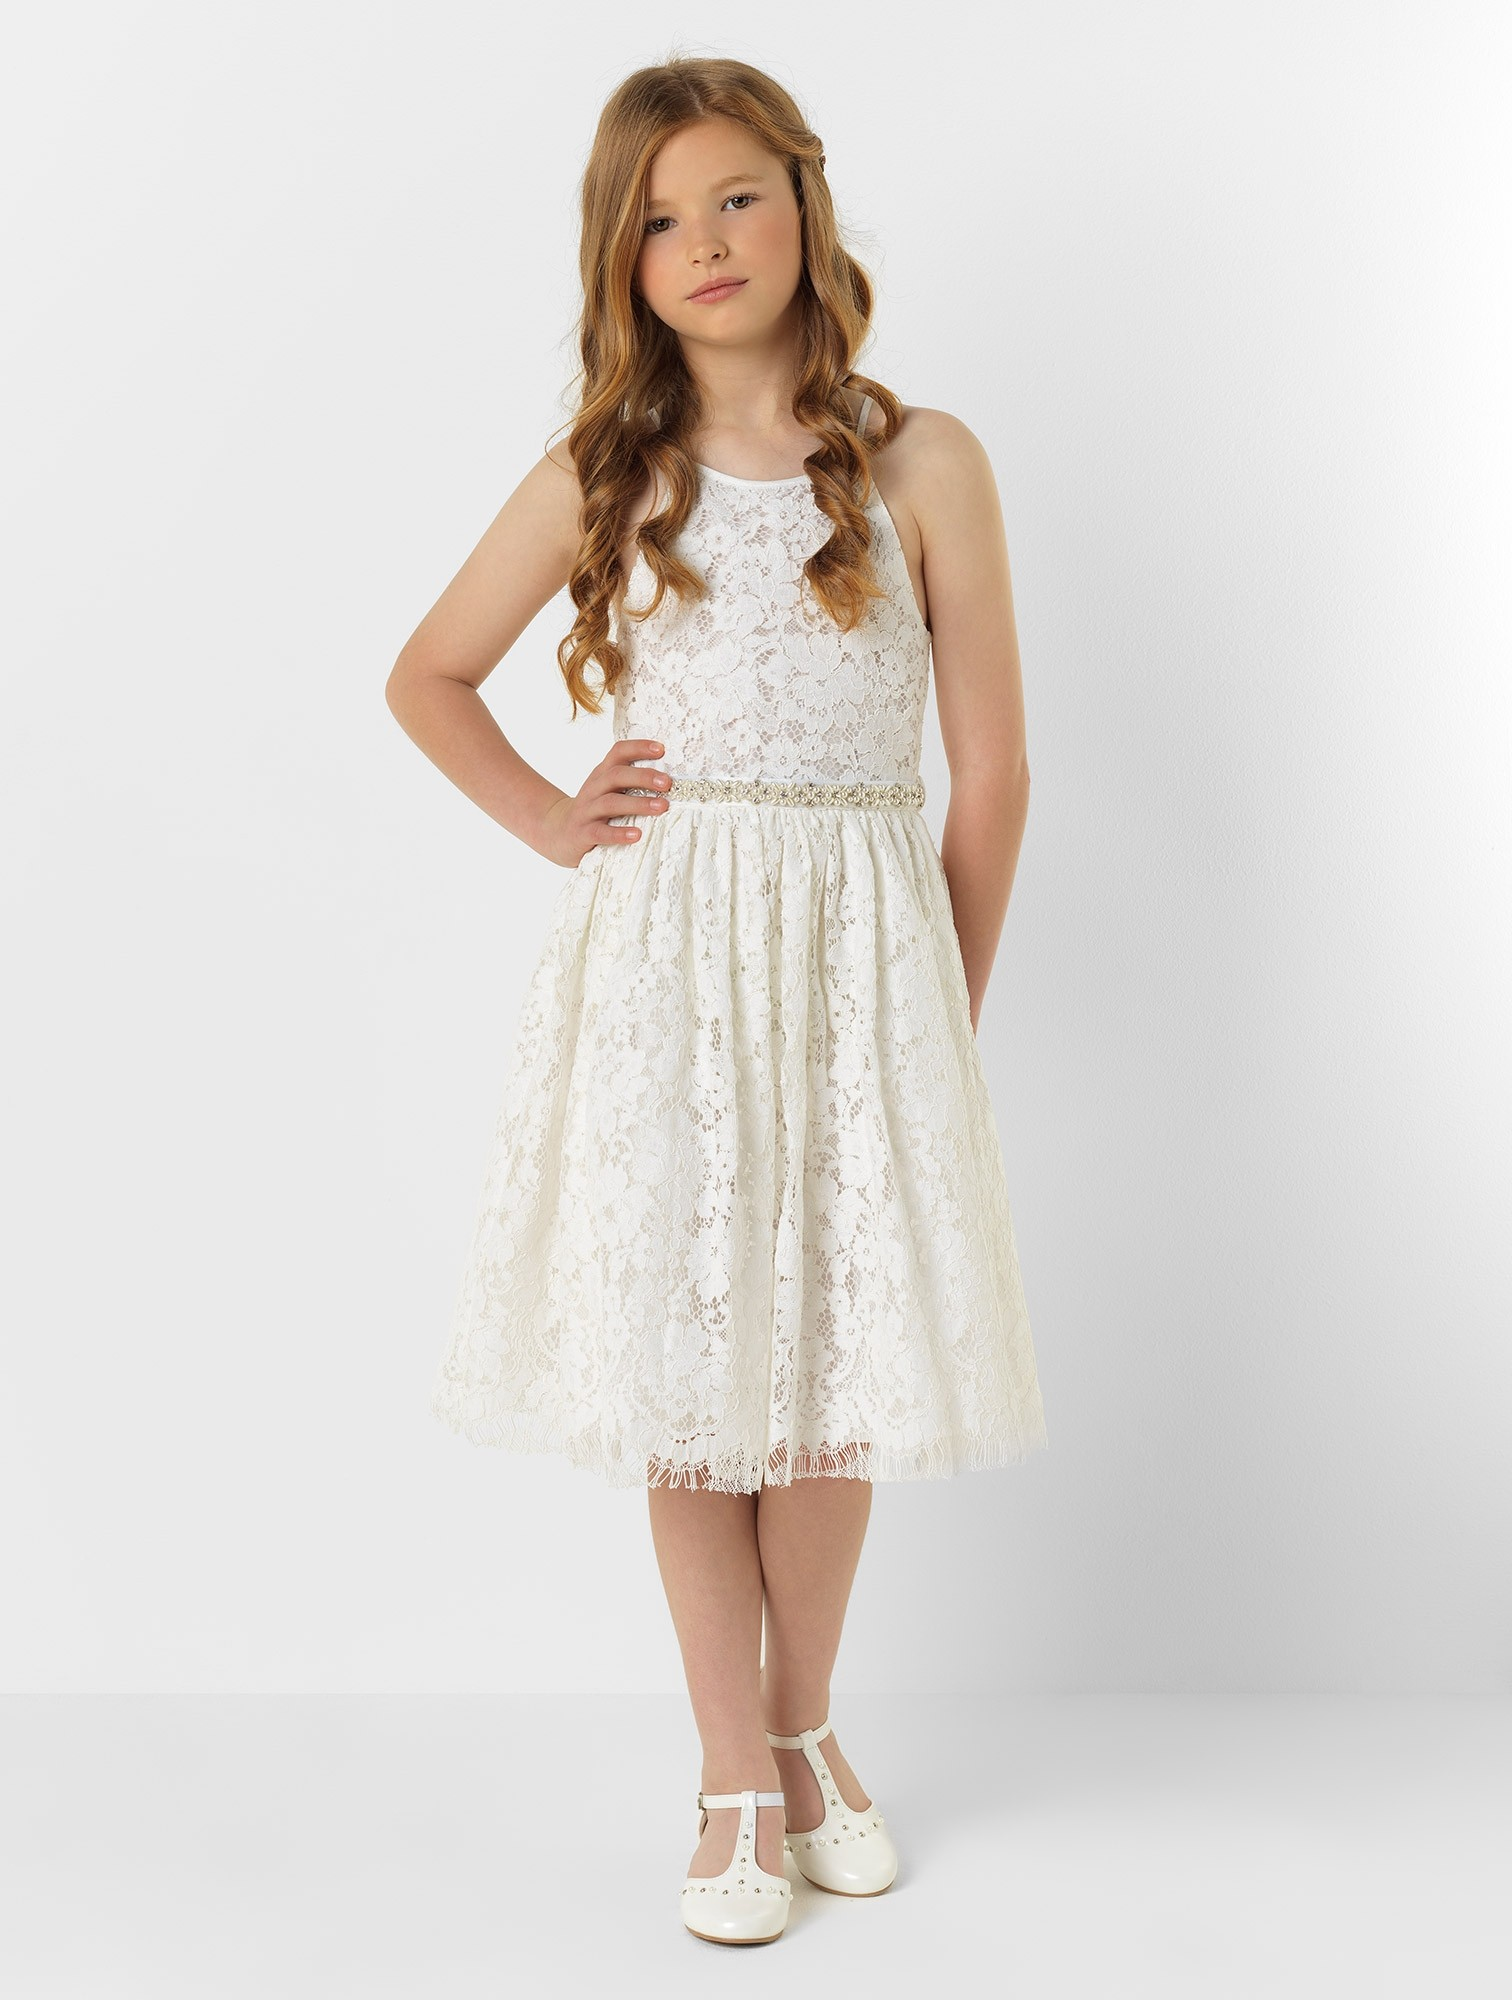 Spaghetti Straps Short A-line Lace Flower Girl Dress with Beaded Belt